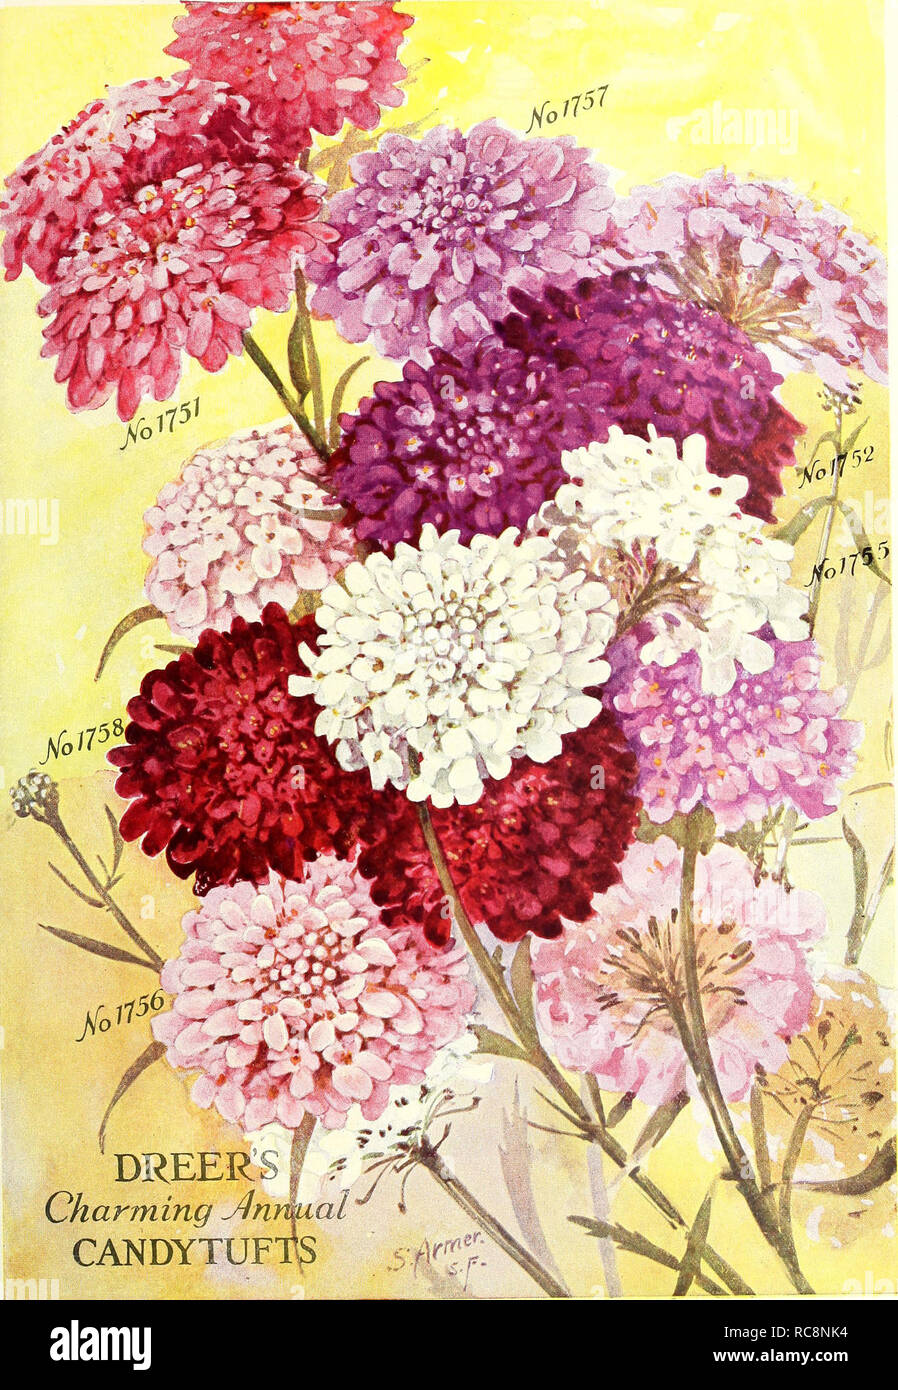 . Dreer's garden book 1926. Seeds Catalogs; Nursery stock Catalogs; Gardening Equipment and supplies Catalogs; Flowers Seeds Catalogs; Vegetables Seeds Catalogs; Fruit Seeds Catalogs. Charming CANDYTUF. Please note that these images are extracted from scanned page images that may have been digitally enhanced for readability - coloration and appearance of these illustrations may not perfectly resemble the original work.. Henry A. Dreer (Firm); Henry G. Gilbert Nursery and Seed Trade Catalog Collection. Philadelphia, Pa. : Henry A. Dreer Stock Photo